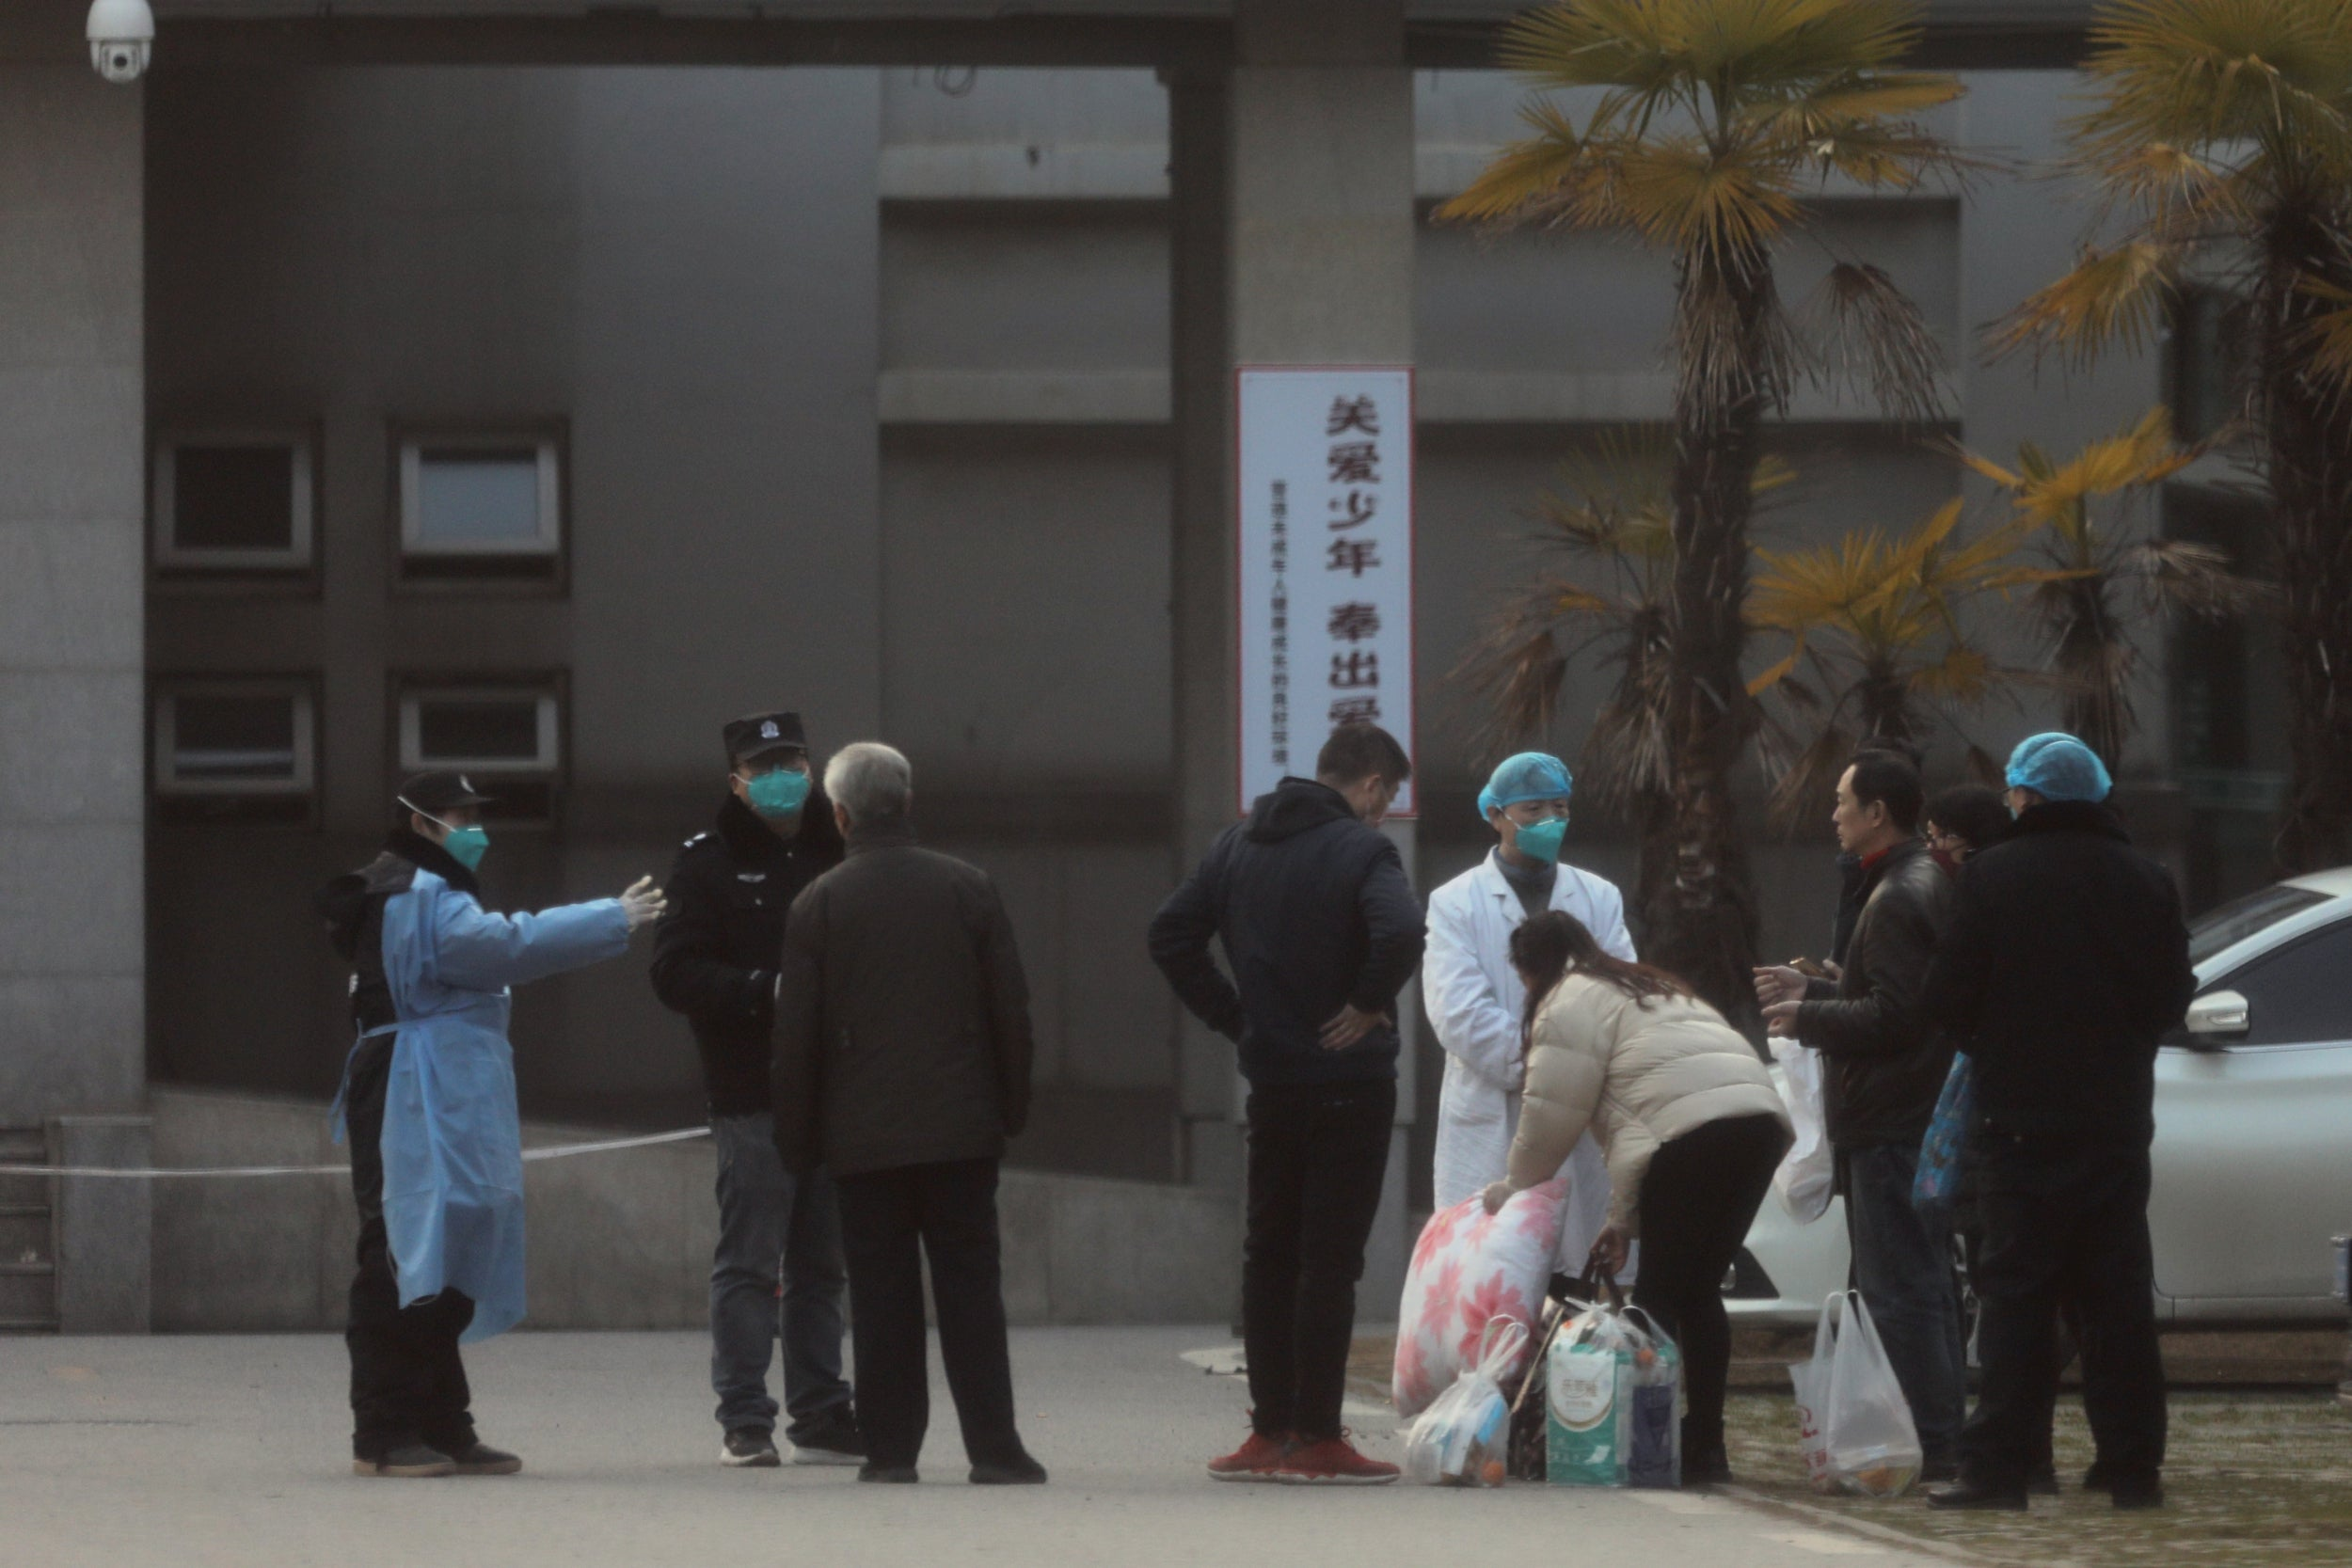 Medical staff and security personnel stop patients' family members from being too close to the Jinyintan hospital, where the patients with pneumonia caused by the new strain of coronavirus are being treated, in Wuhan, Hubei province, China January 20, 2020. Photo: Reuters